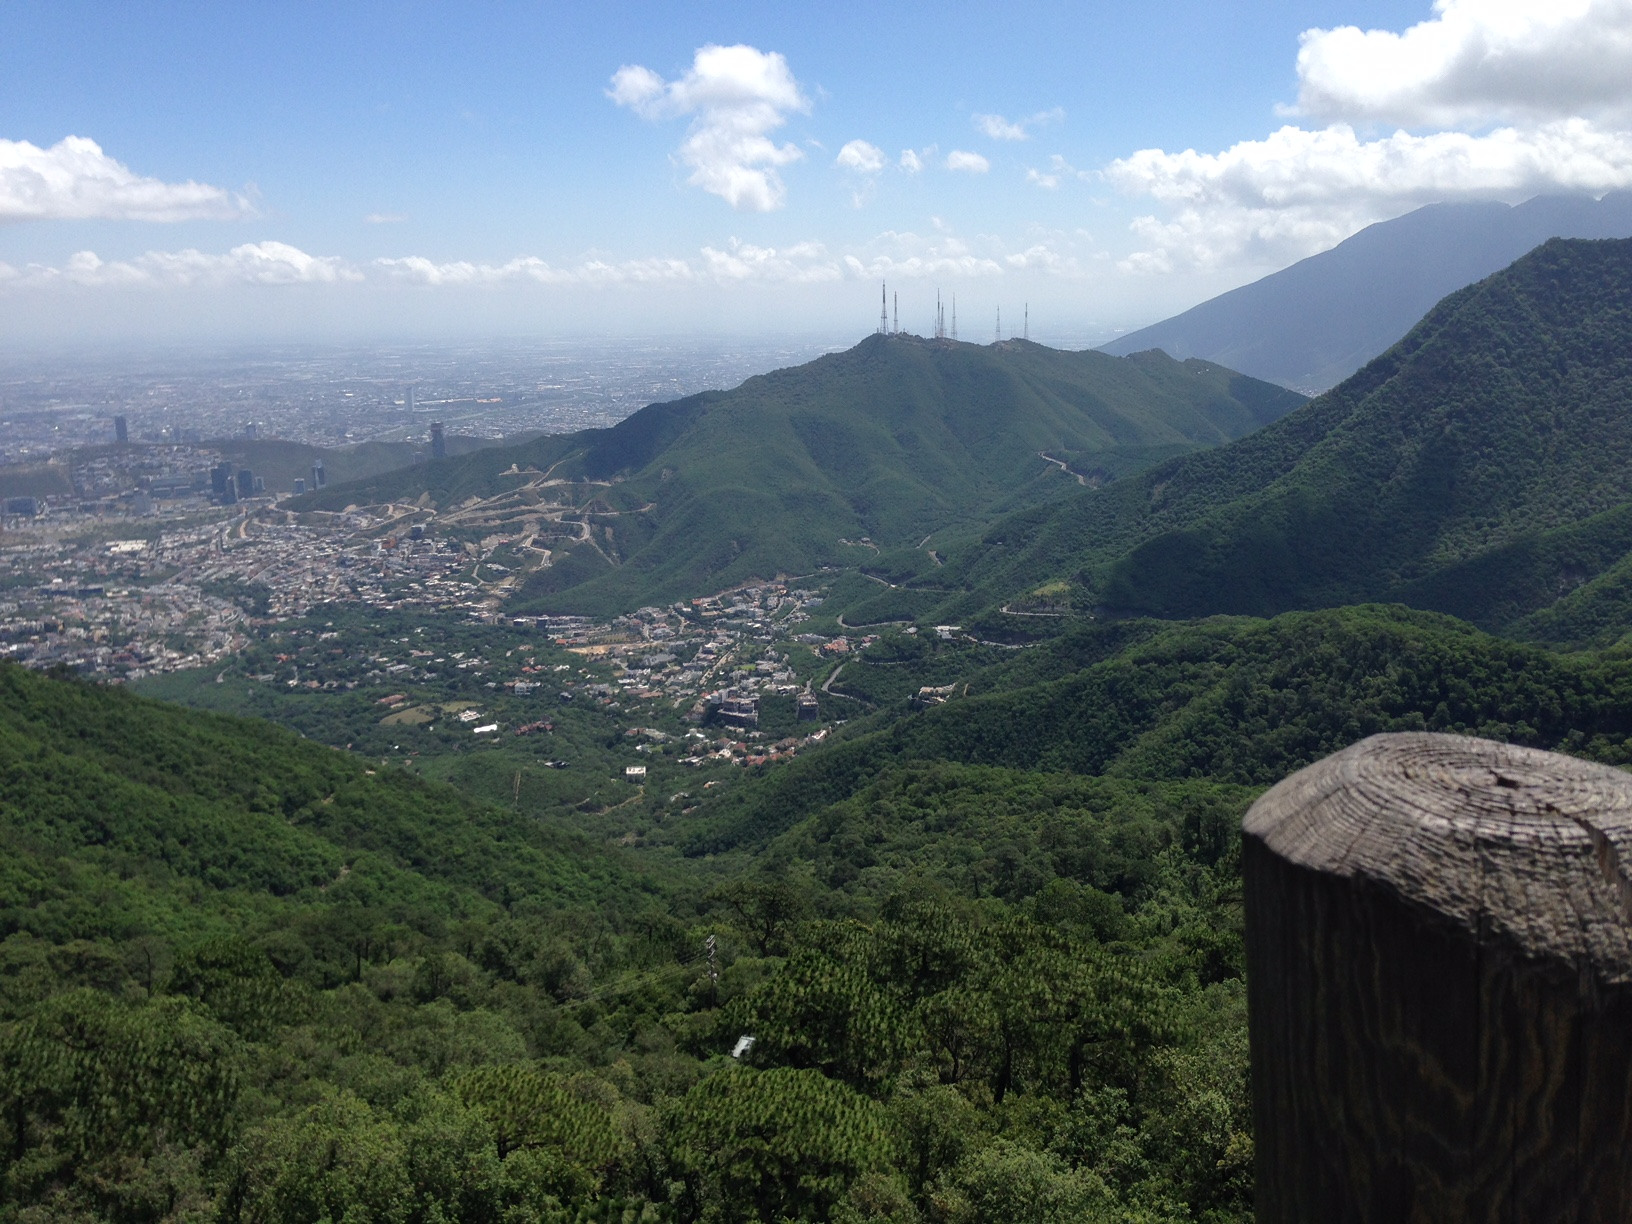 """View from Chipinque at Monterrey Mexico, looking toward Guadalupe's former steel plant the largest of its kind when built in 1968, """"Corruption Tower,"""" one of Monterrey's most beautiful new government buildings, and outside the photo, half a mountain mined for its concrete. A frightening sight."""